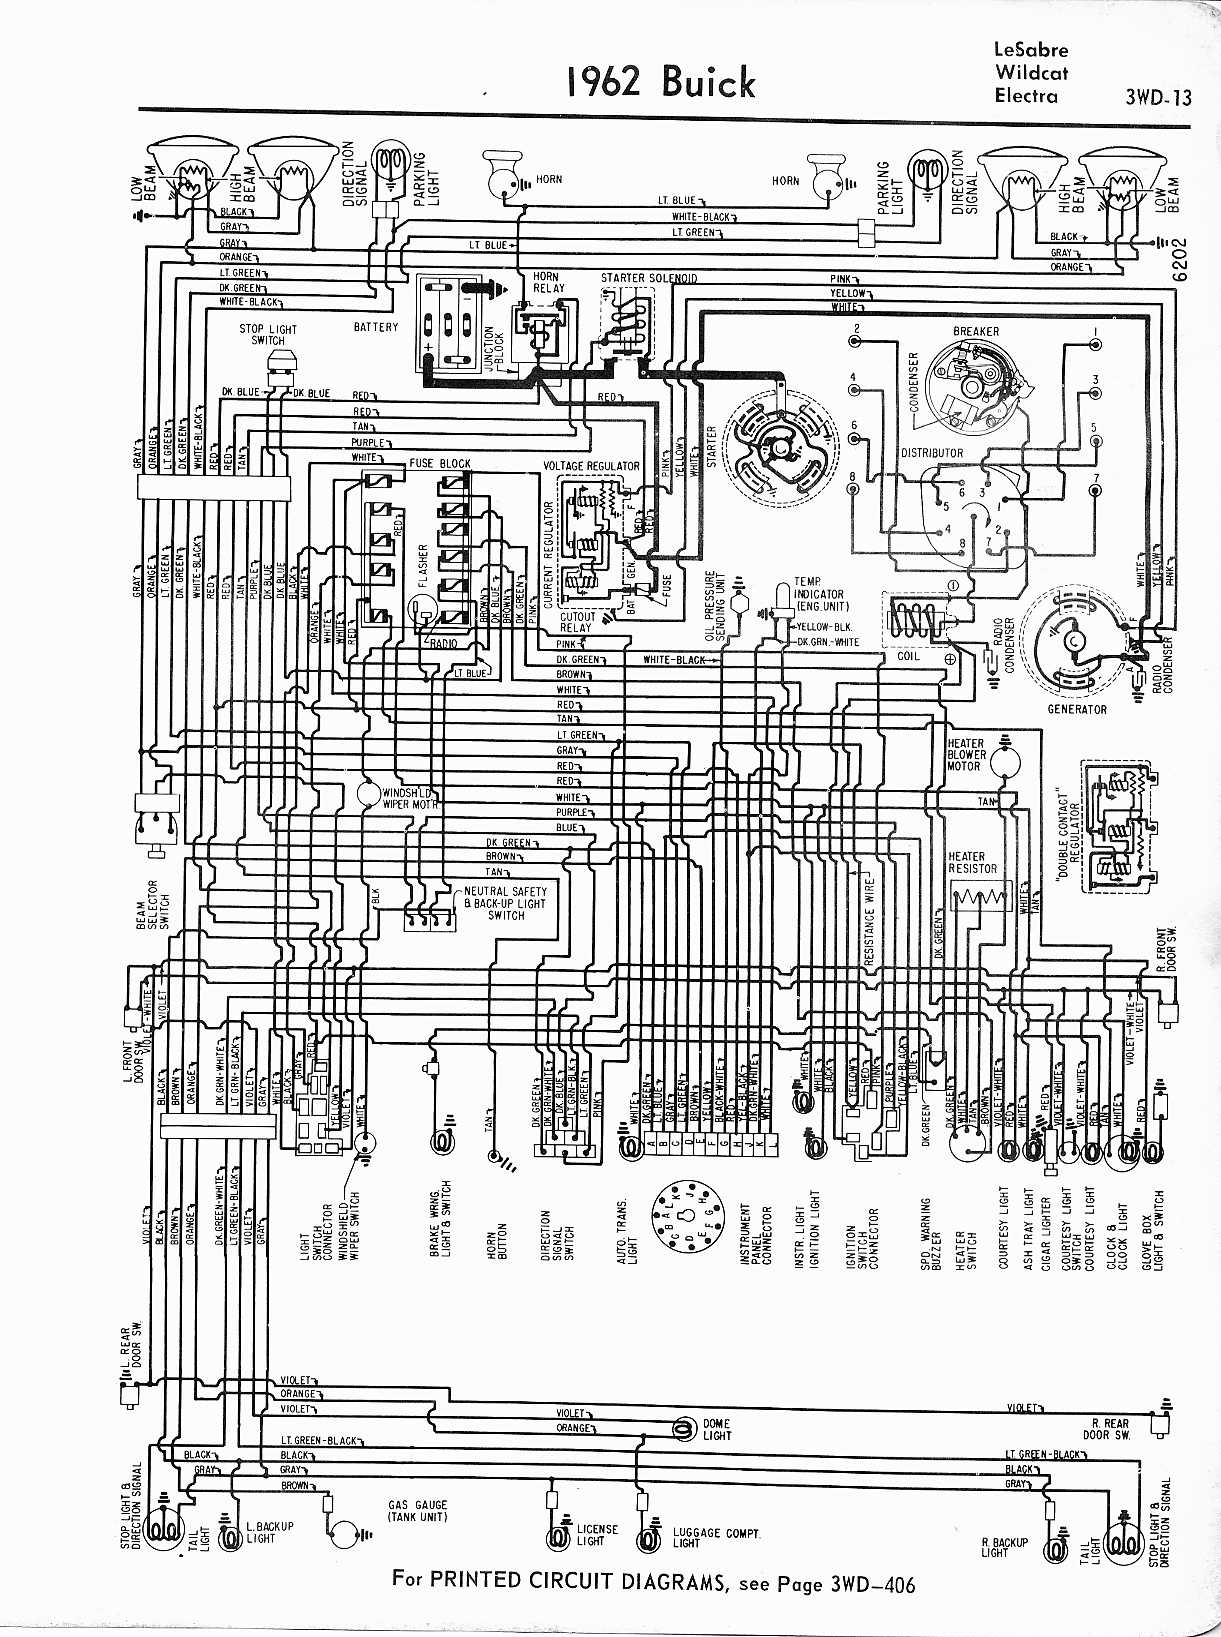 1971 Buick Skylark Wiring Diagram Starting Know About Circuit Board G01 28667 Diagrams 1957 1965 Rh Oldcarmanualproject Com